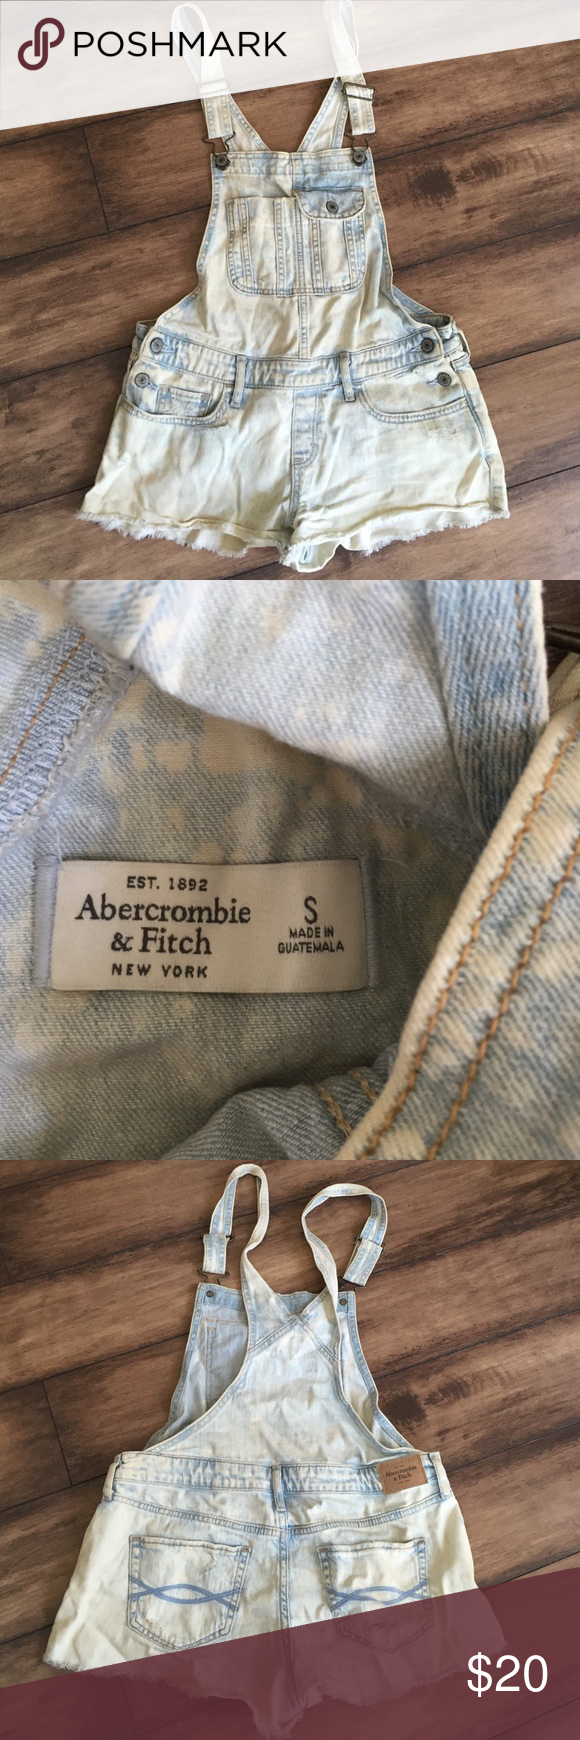 Abercrombie overalls Abercrombie overall shorts . Size small . Light wash Abercrombie & Fitch Shorts